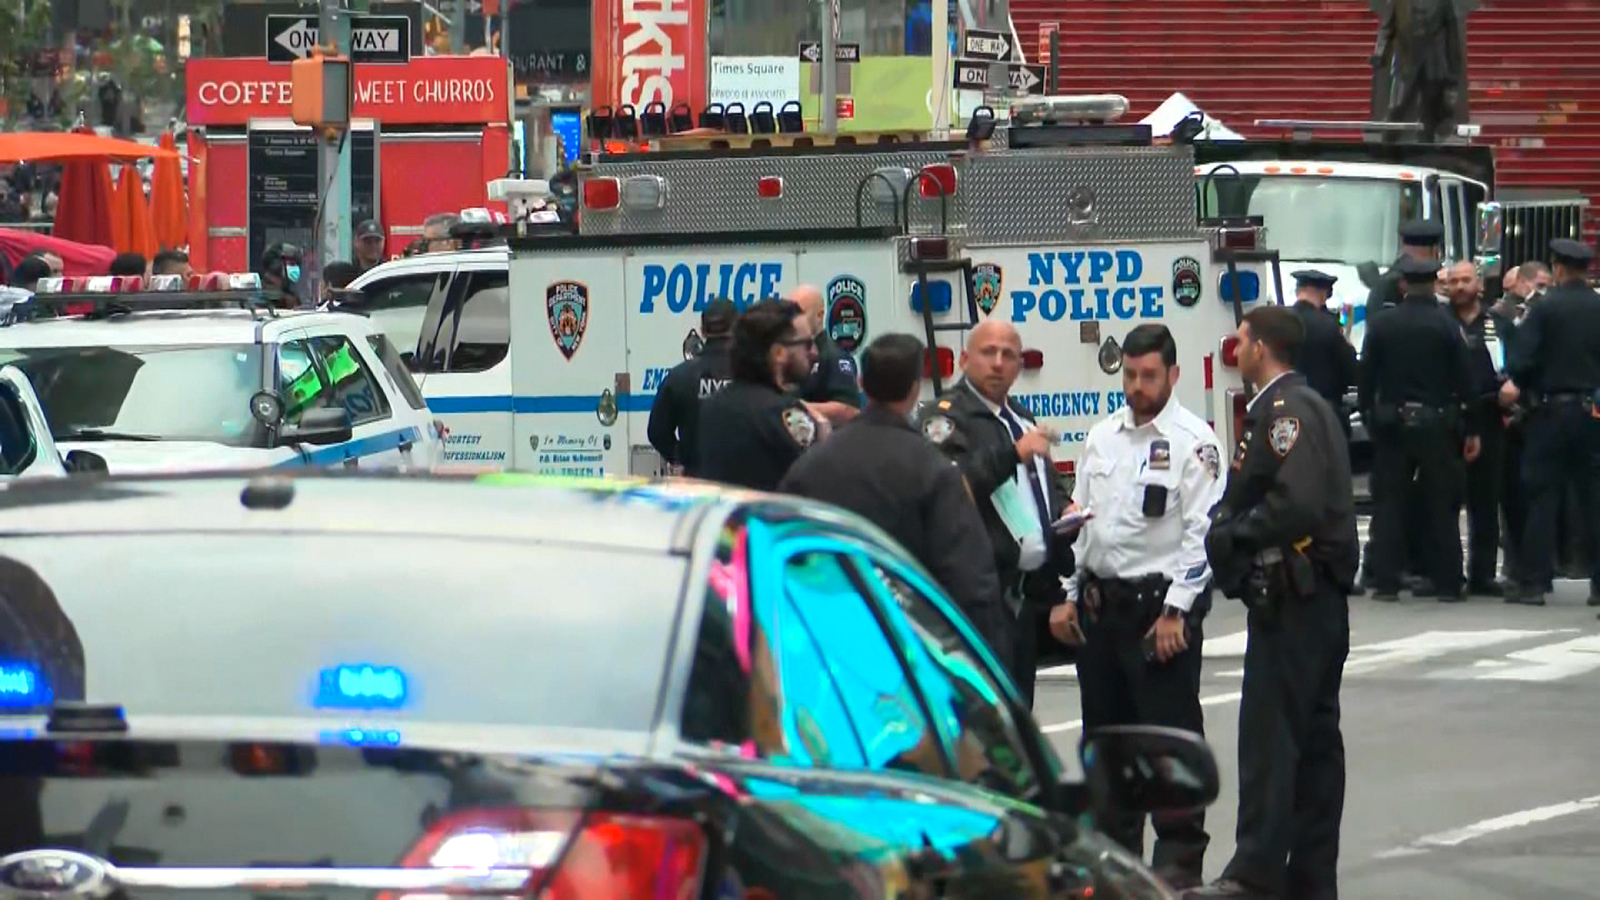 Two women and a 4-year-old girl wounded in Times Square shooting, NYPD says